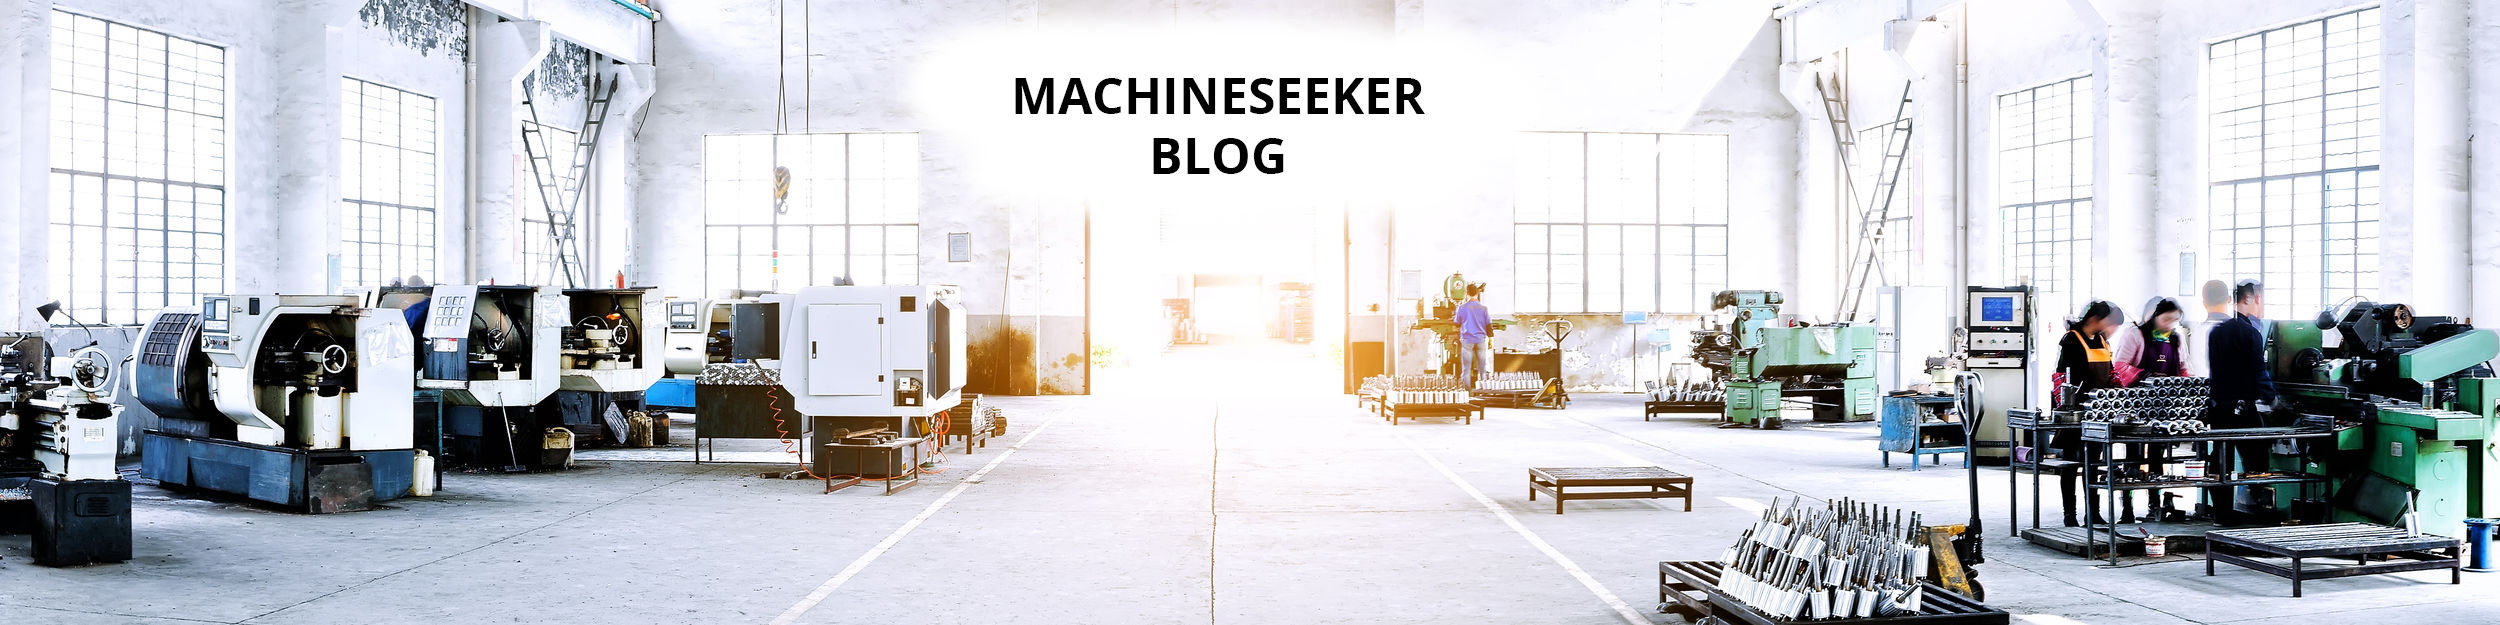 Machineseeker Blog